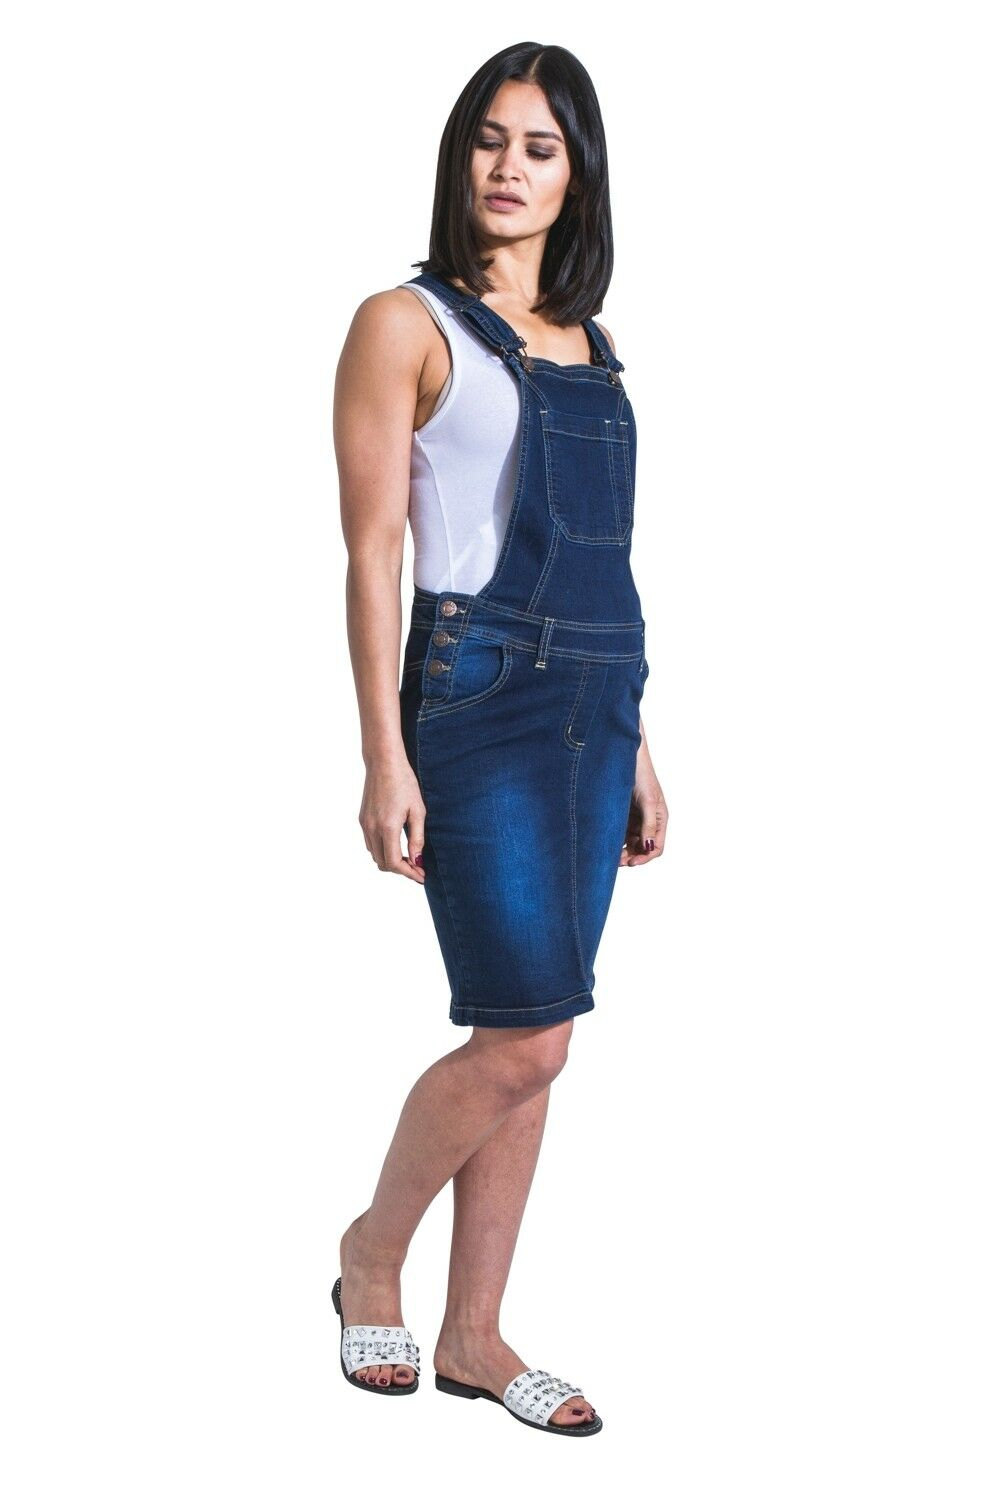 USKEES ROSIE Short Maternity Pinafore Darkwash Denim Pregnancy Dress Adjustable